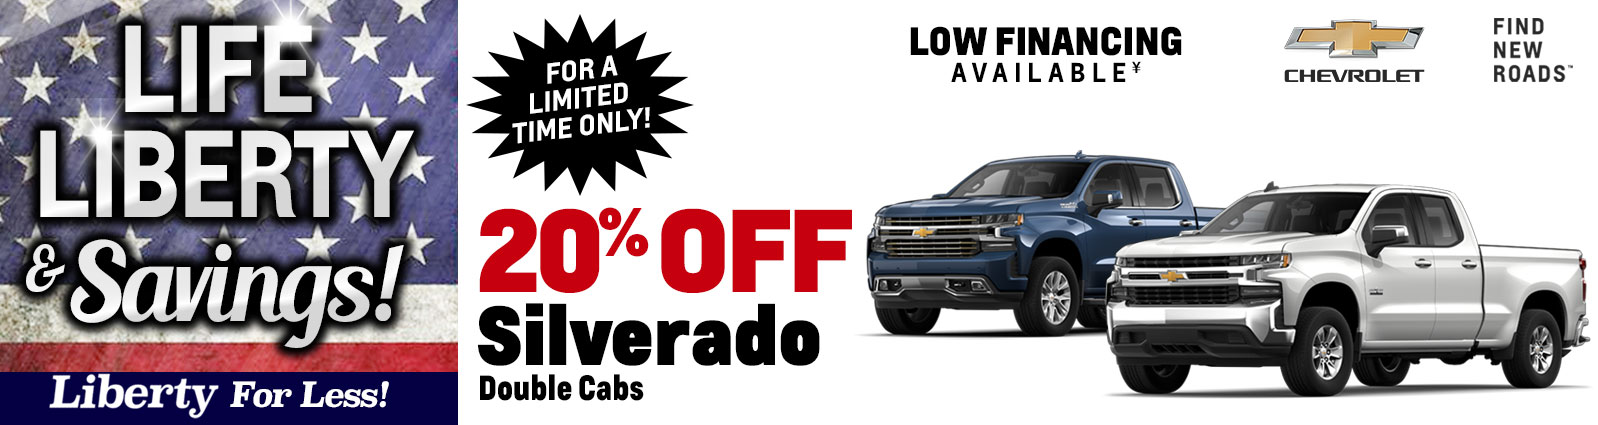 Lease Deals Near Me >> New Chevy Specials Near Me Lease A New Chevy Near Malden Ma